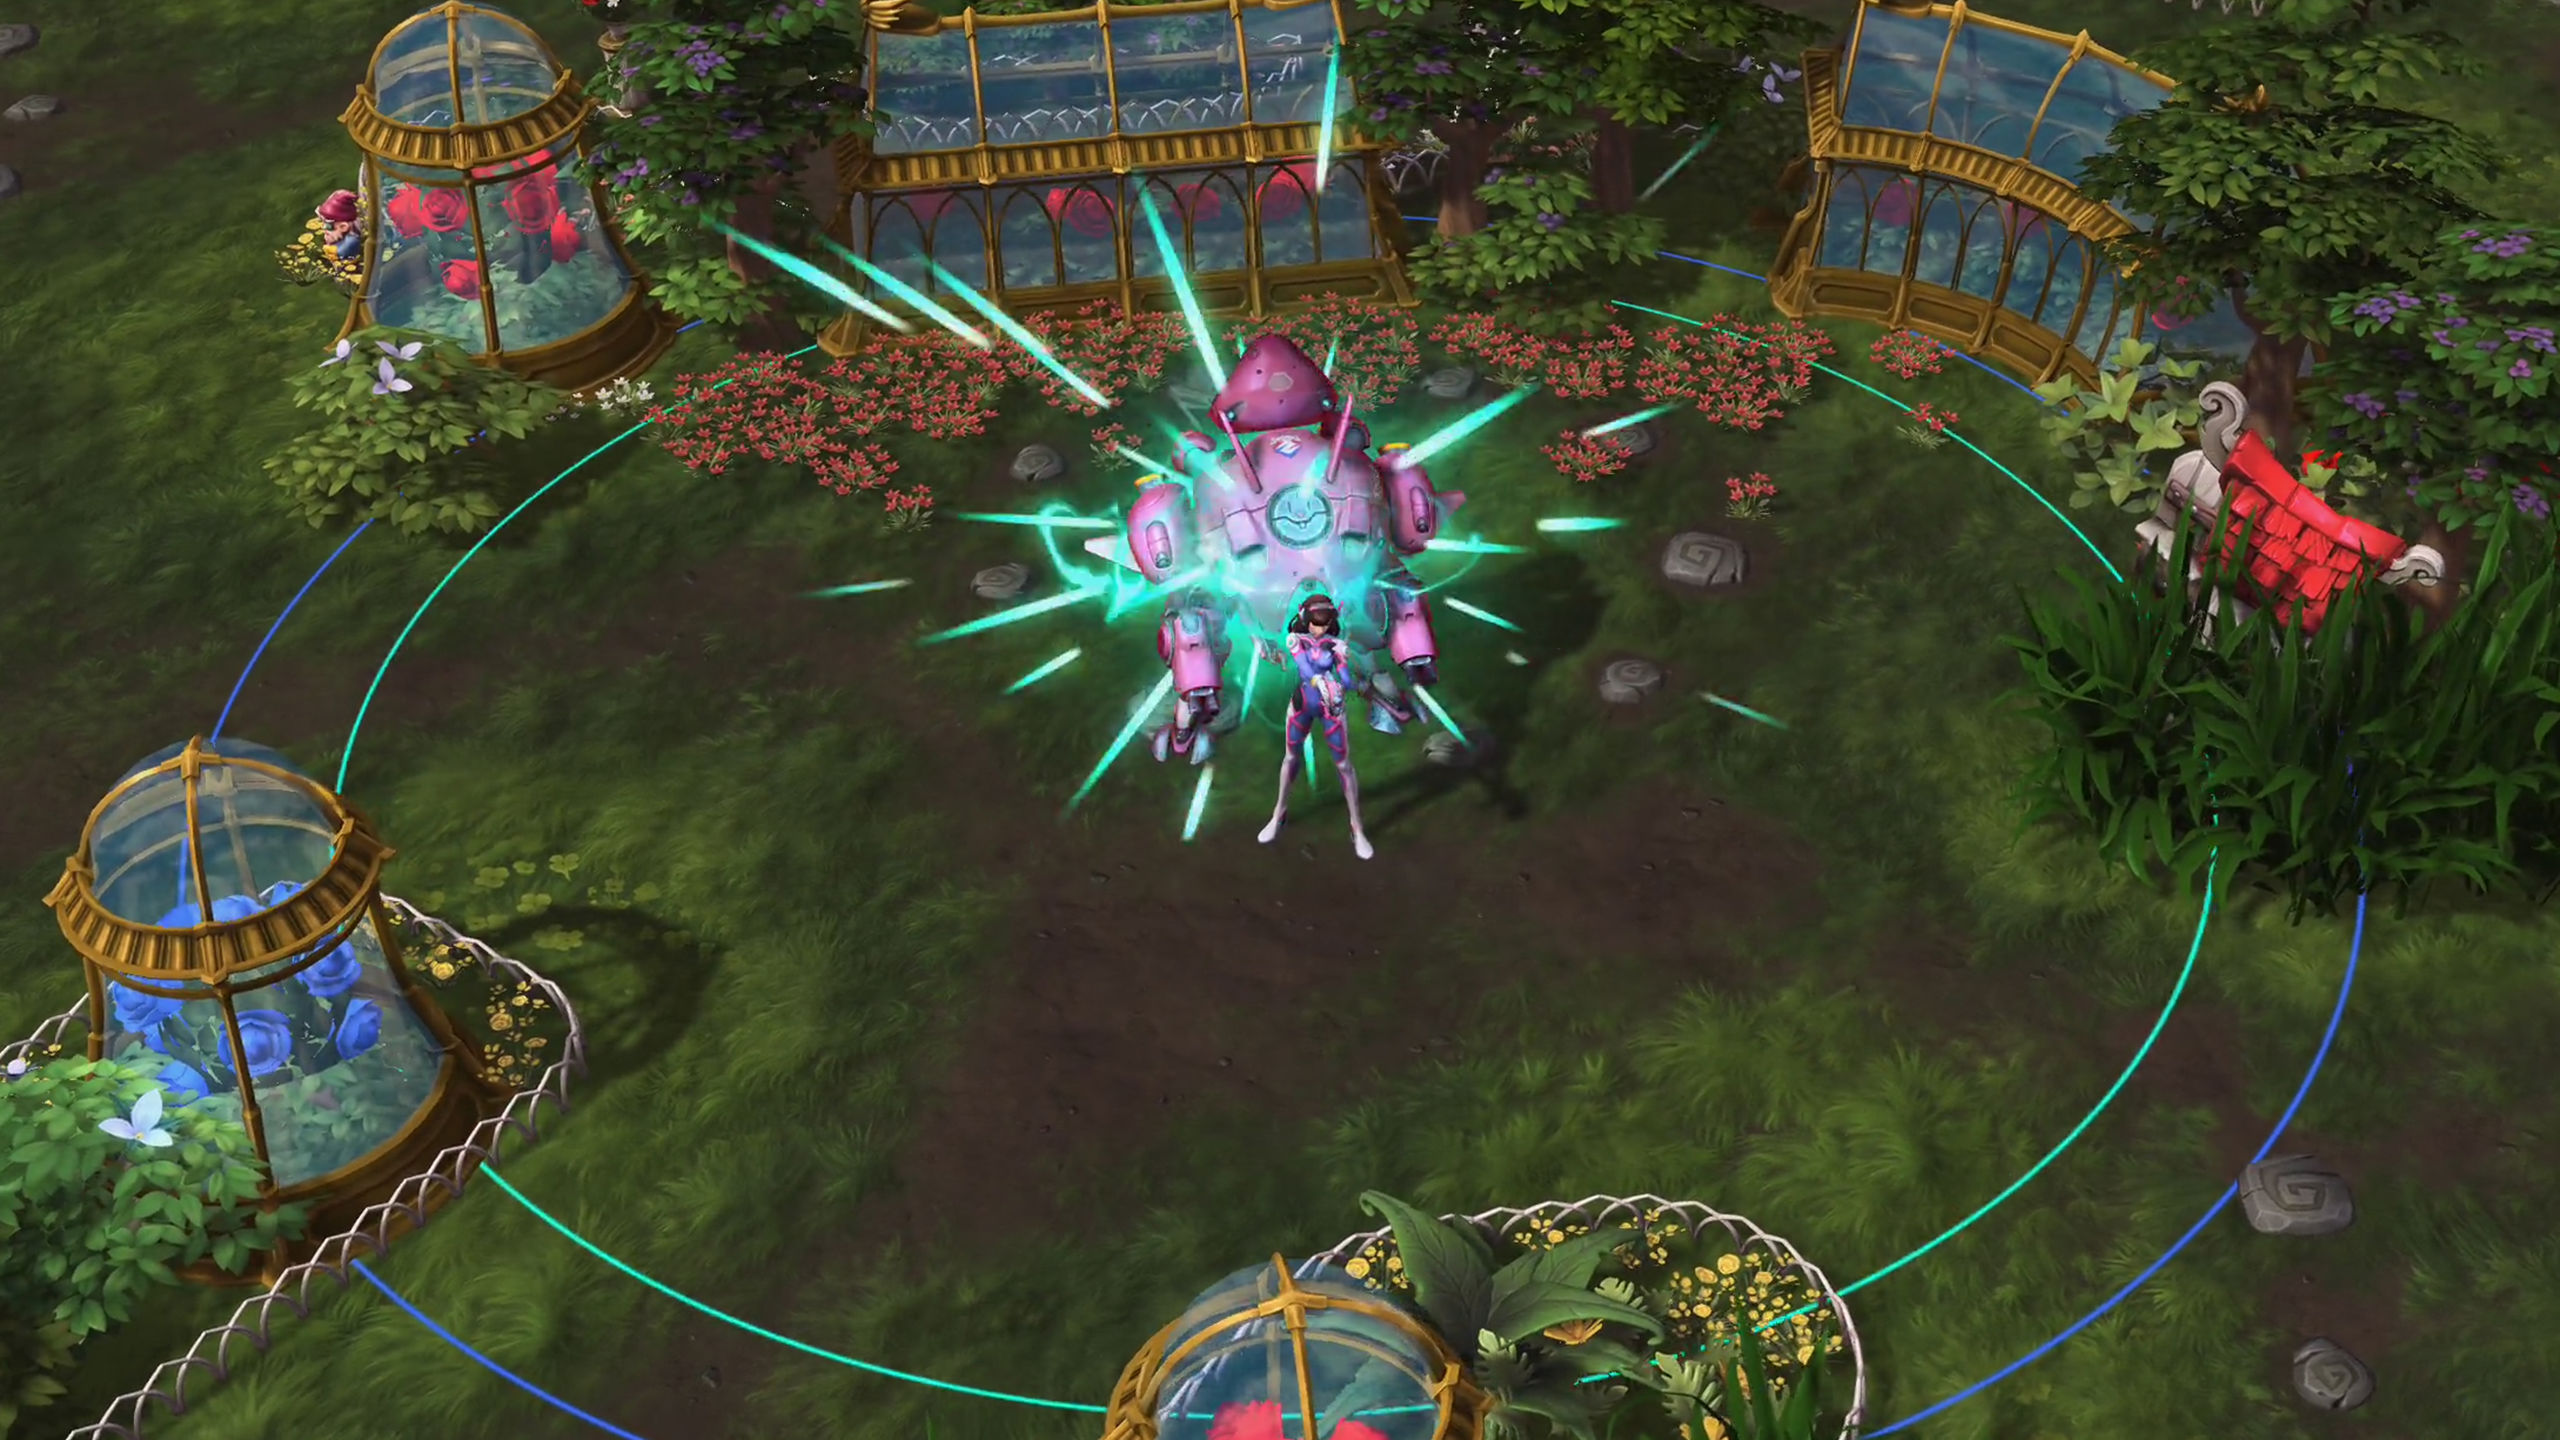 Here's a look at Heroes of the Storm's version of D.Va screenshot